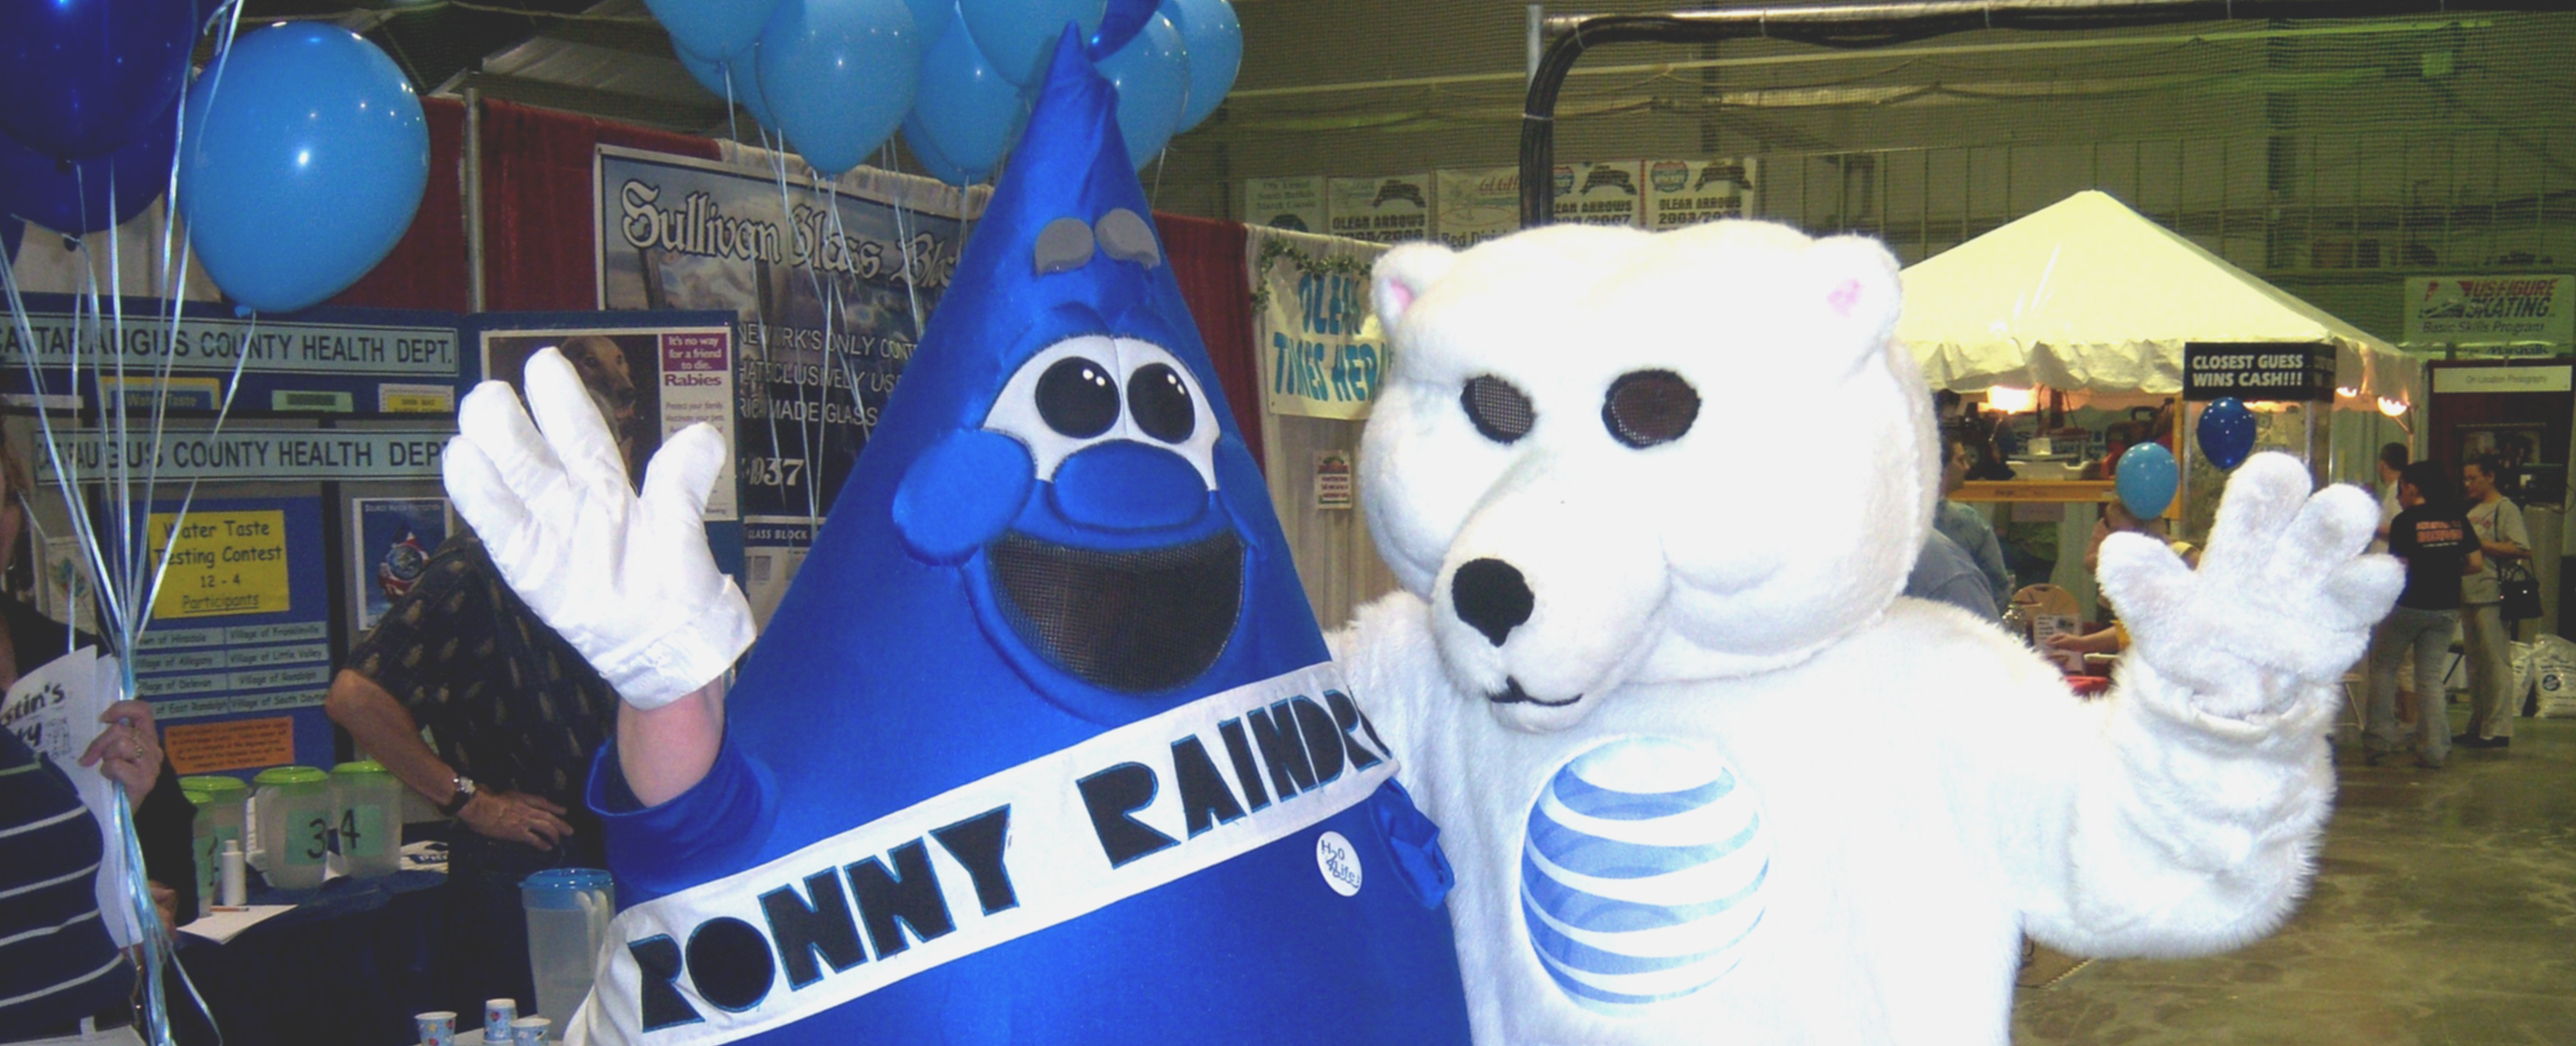 Ronny Raindrop and Friend